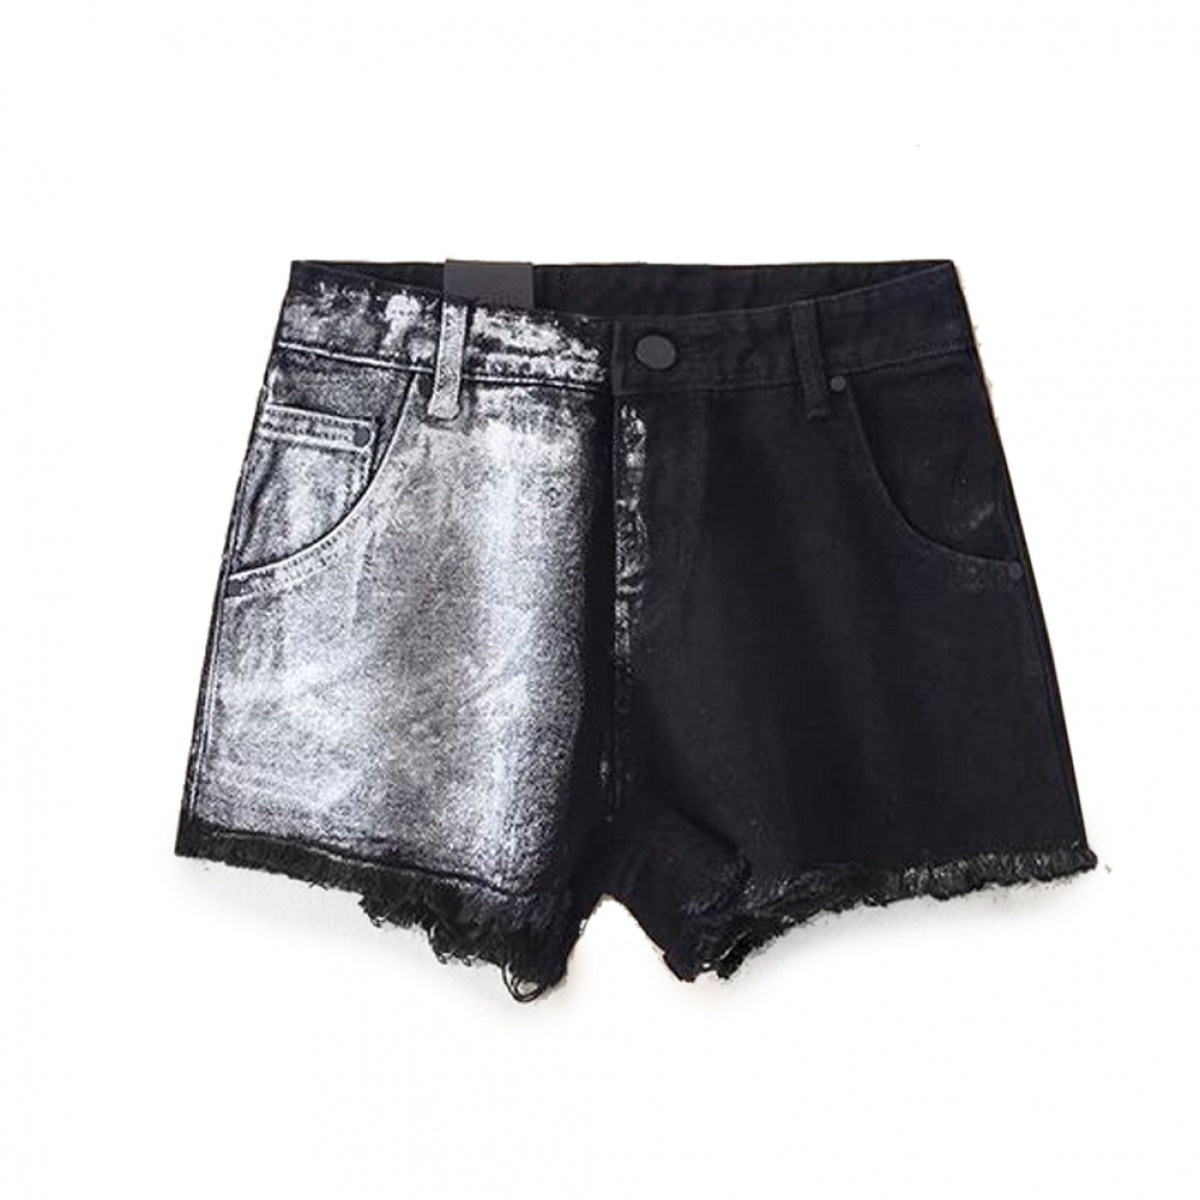 Womens Distressed Black Denim Shorts | LATICCI